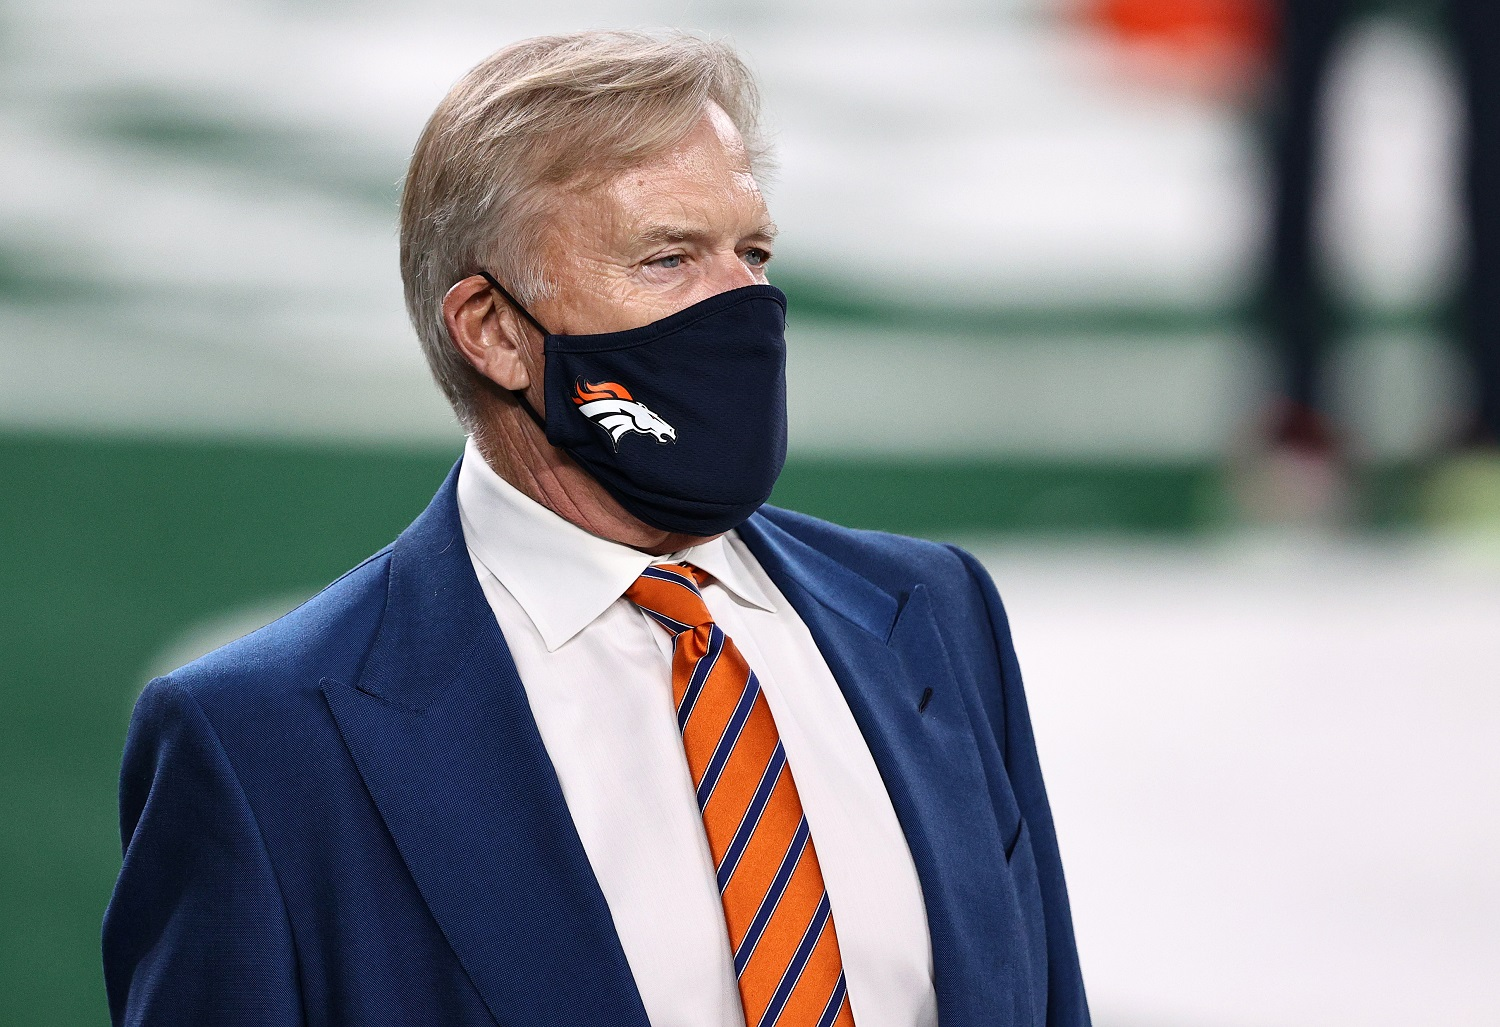 John Elway Revealed 1 of His Biggest Hang-Ups in Life, and It's a Doozy